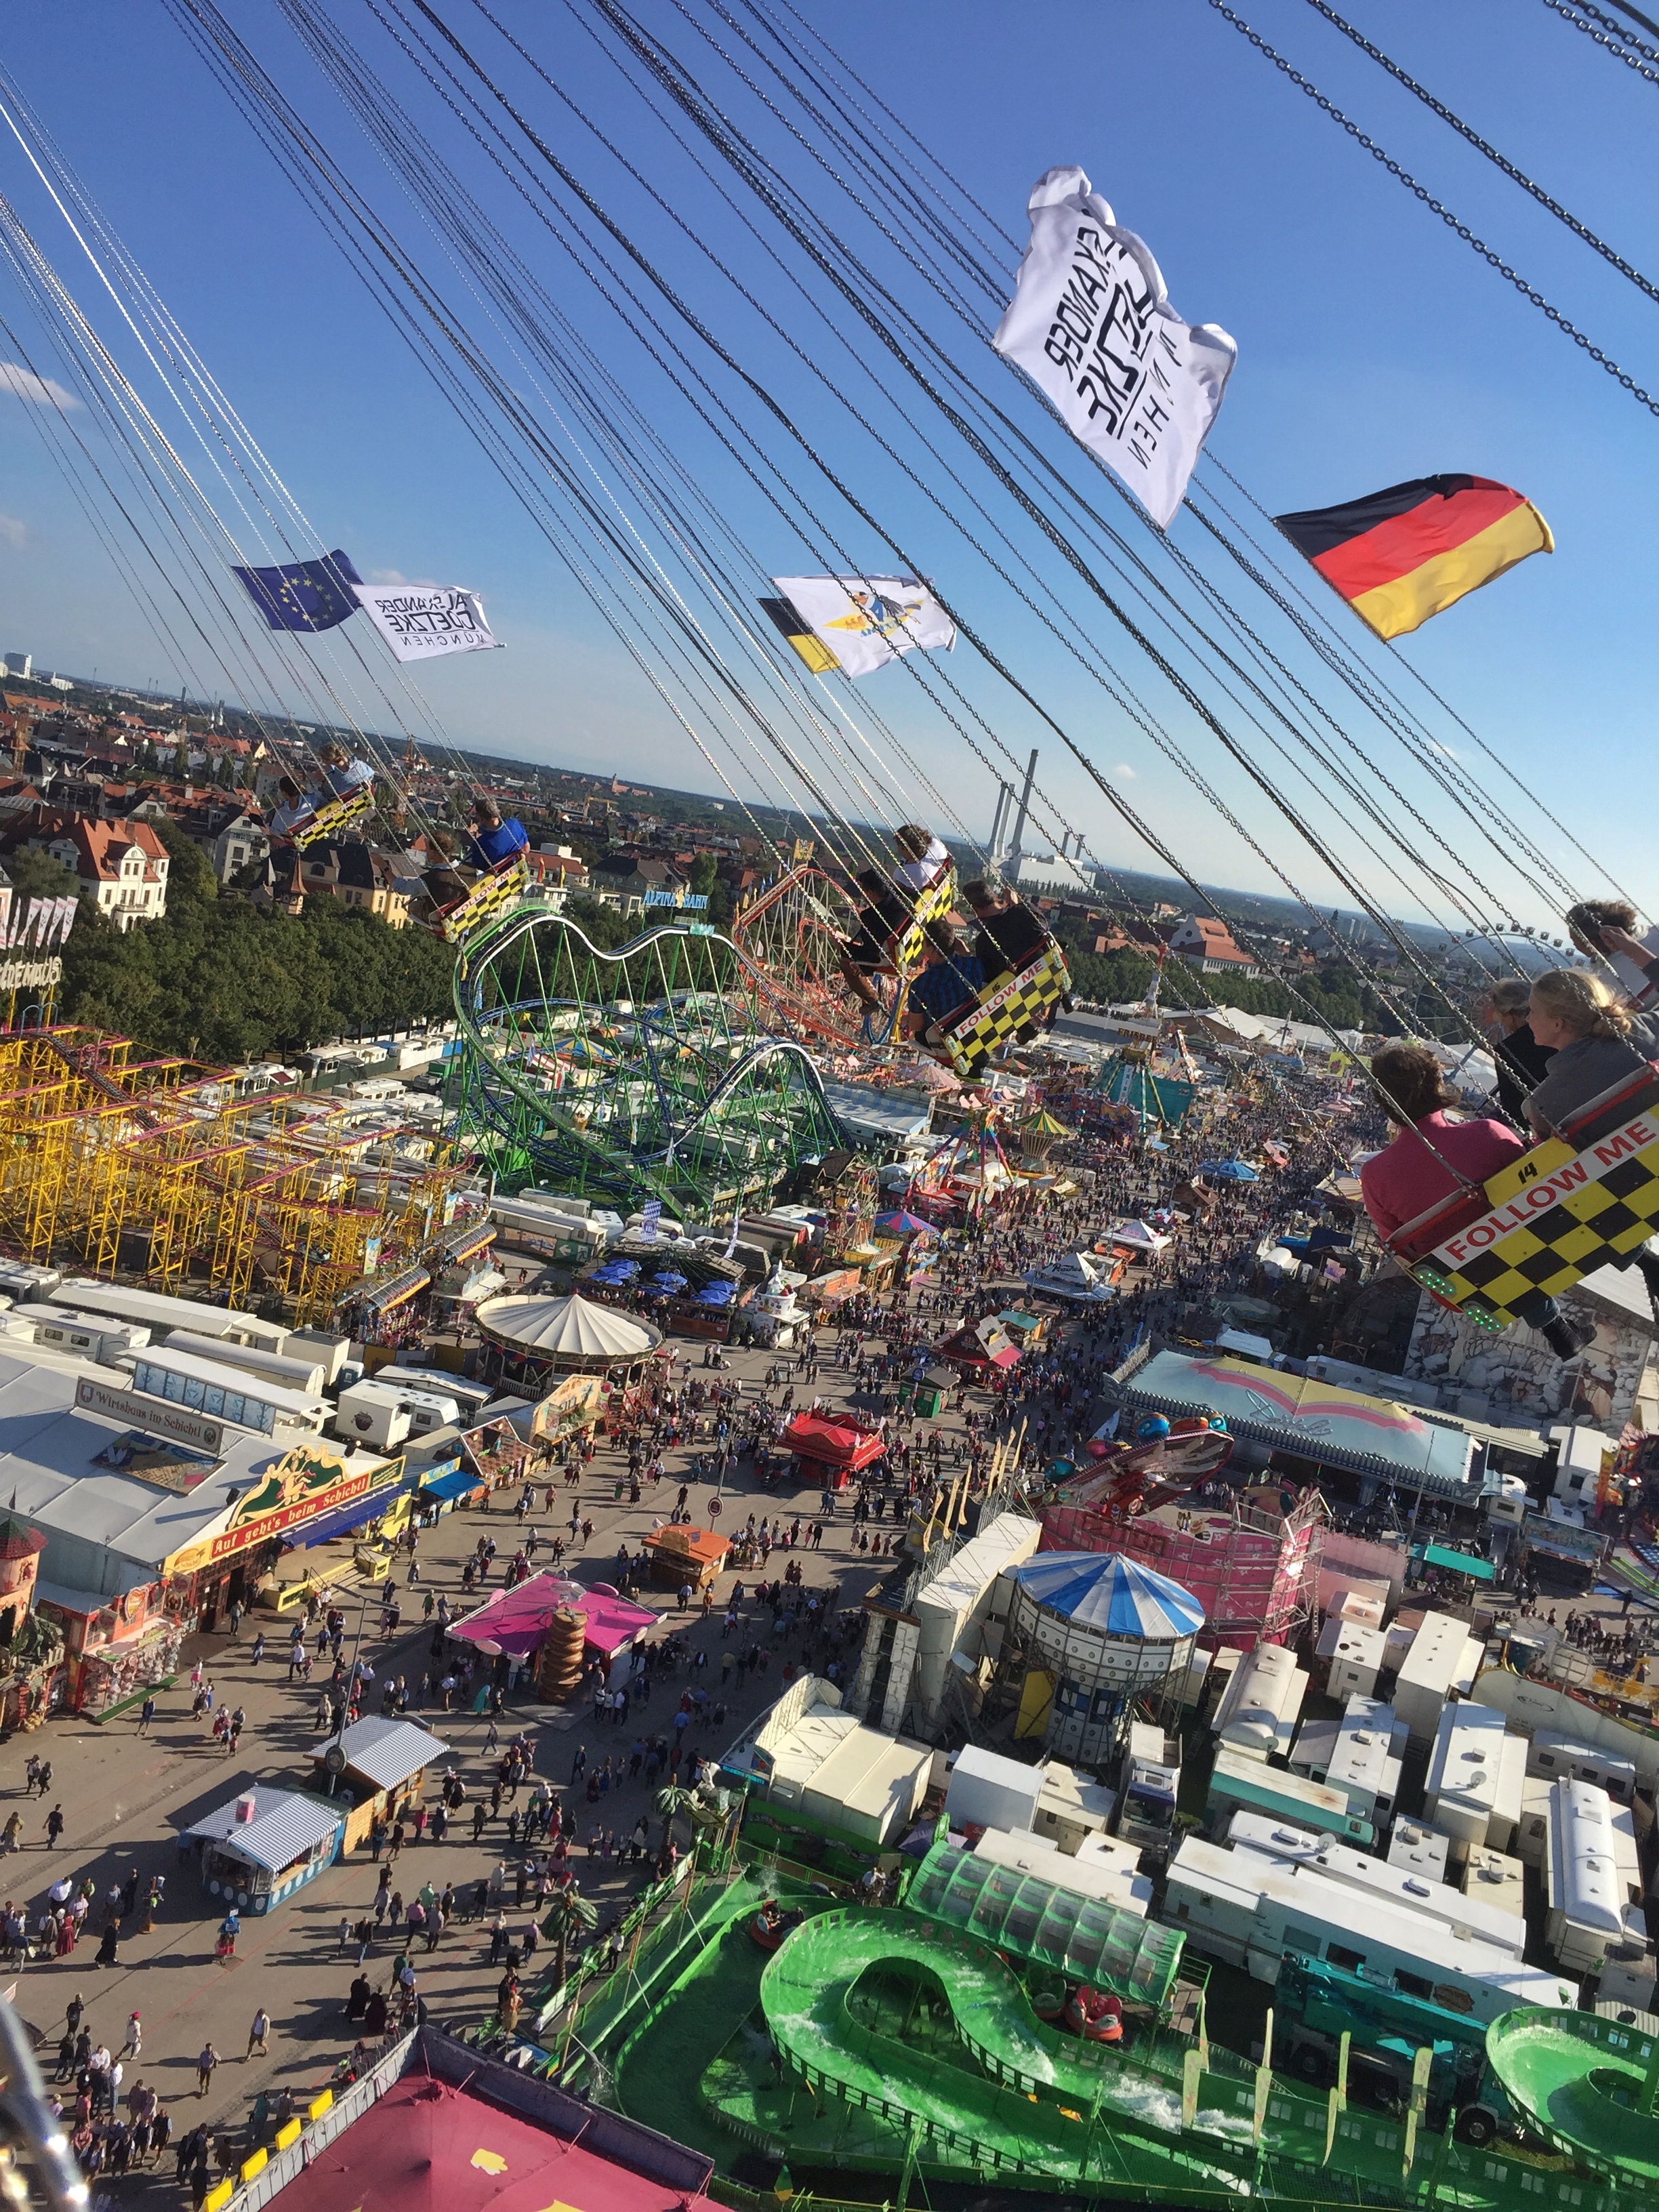 Take in 360 views of the fairgrounds from a swing that takes you (wait for it) 20 stories up into the air. You might need a few beers to calm your nerves first. (Photo by Linnea G.)